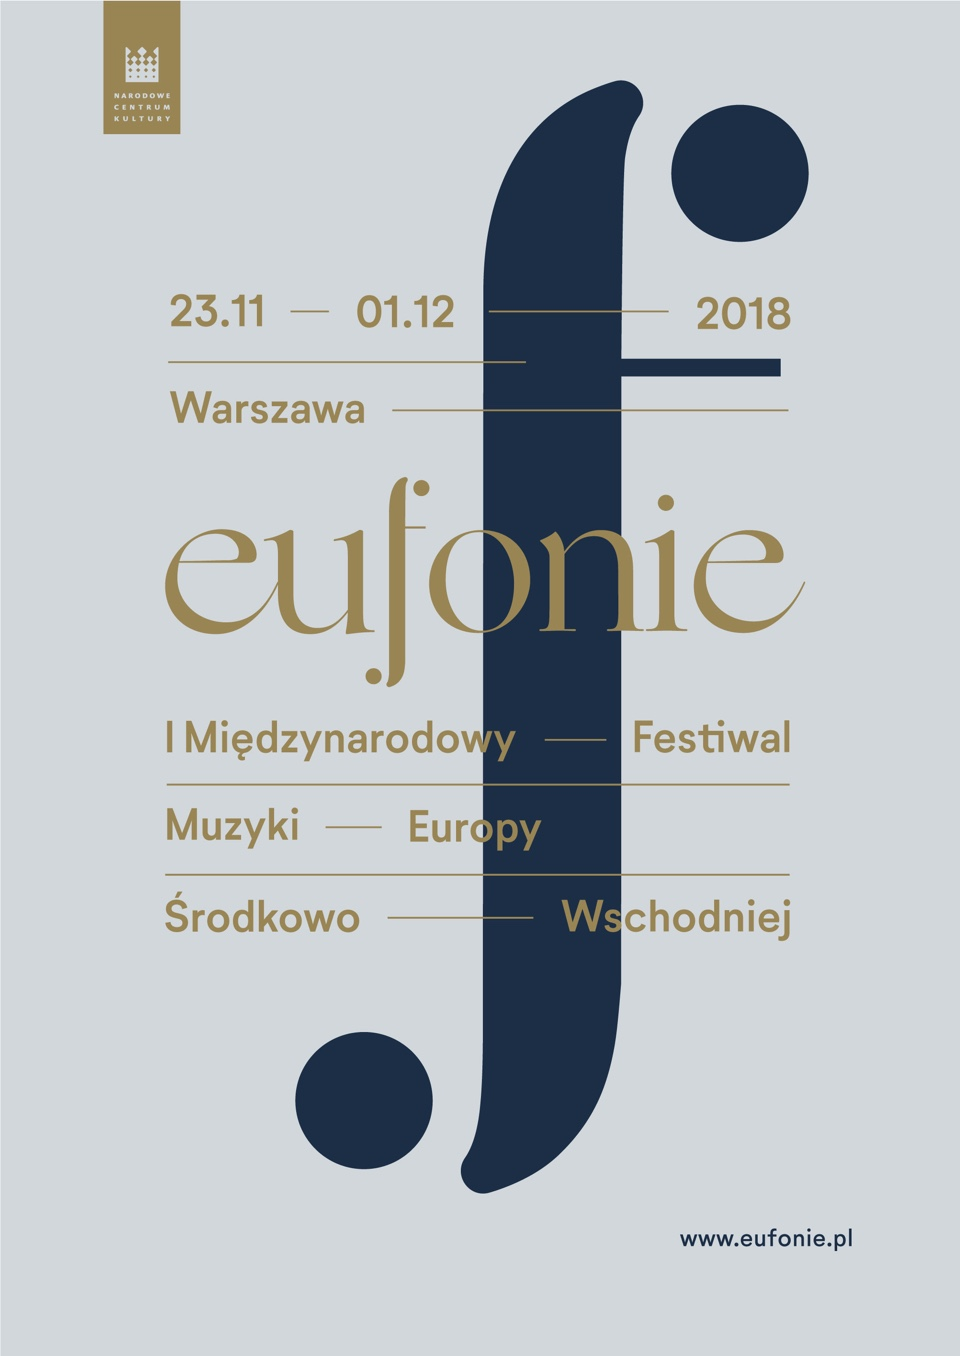 Poster design - Eufonie Festival by Uniforma